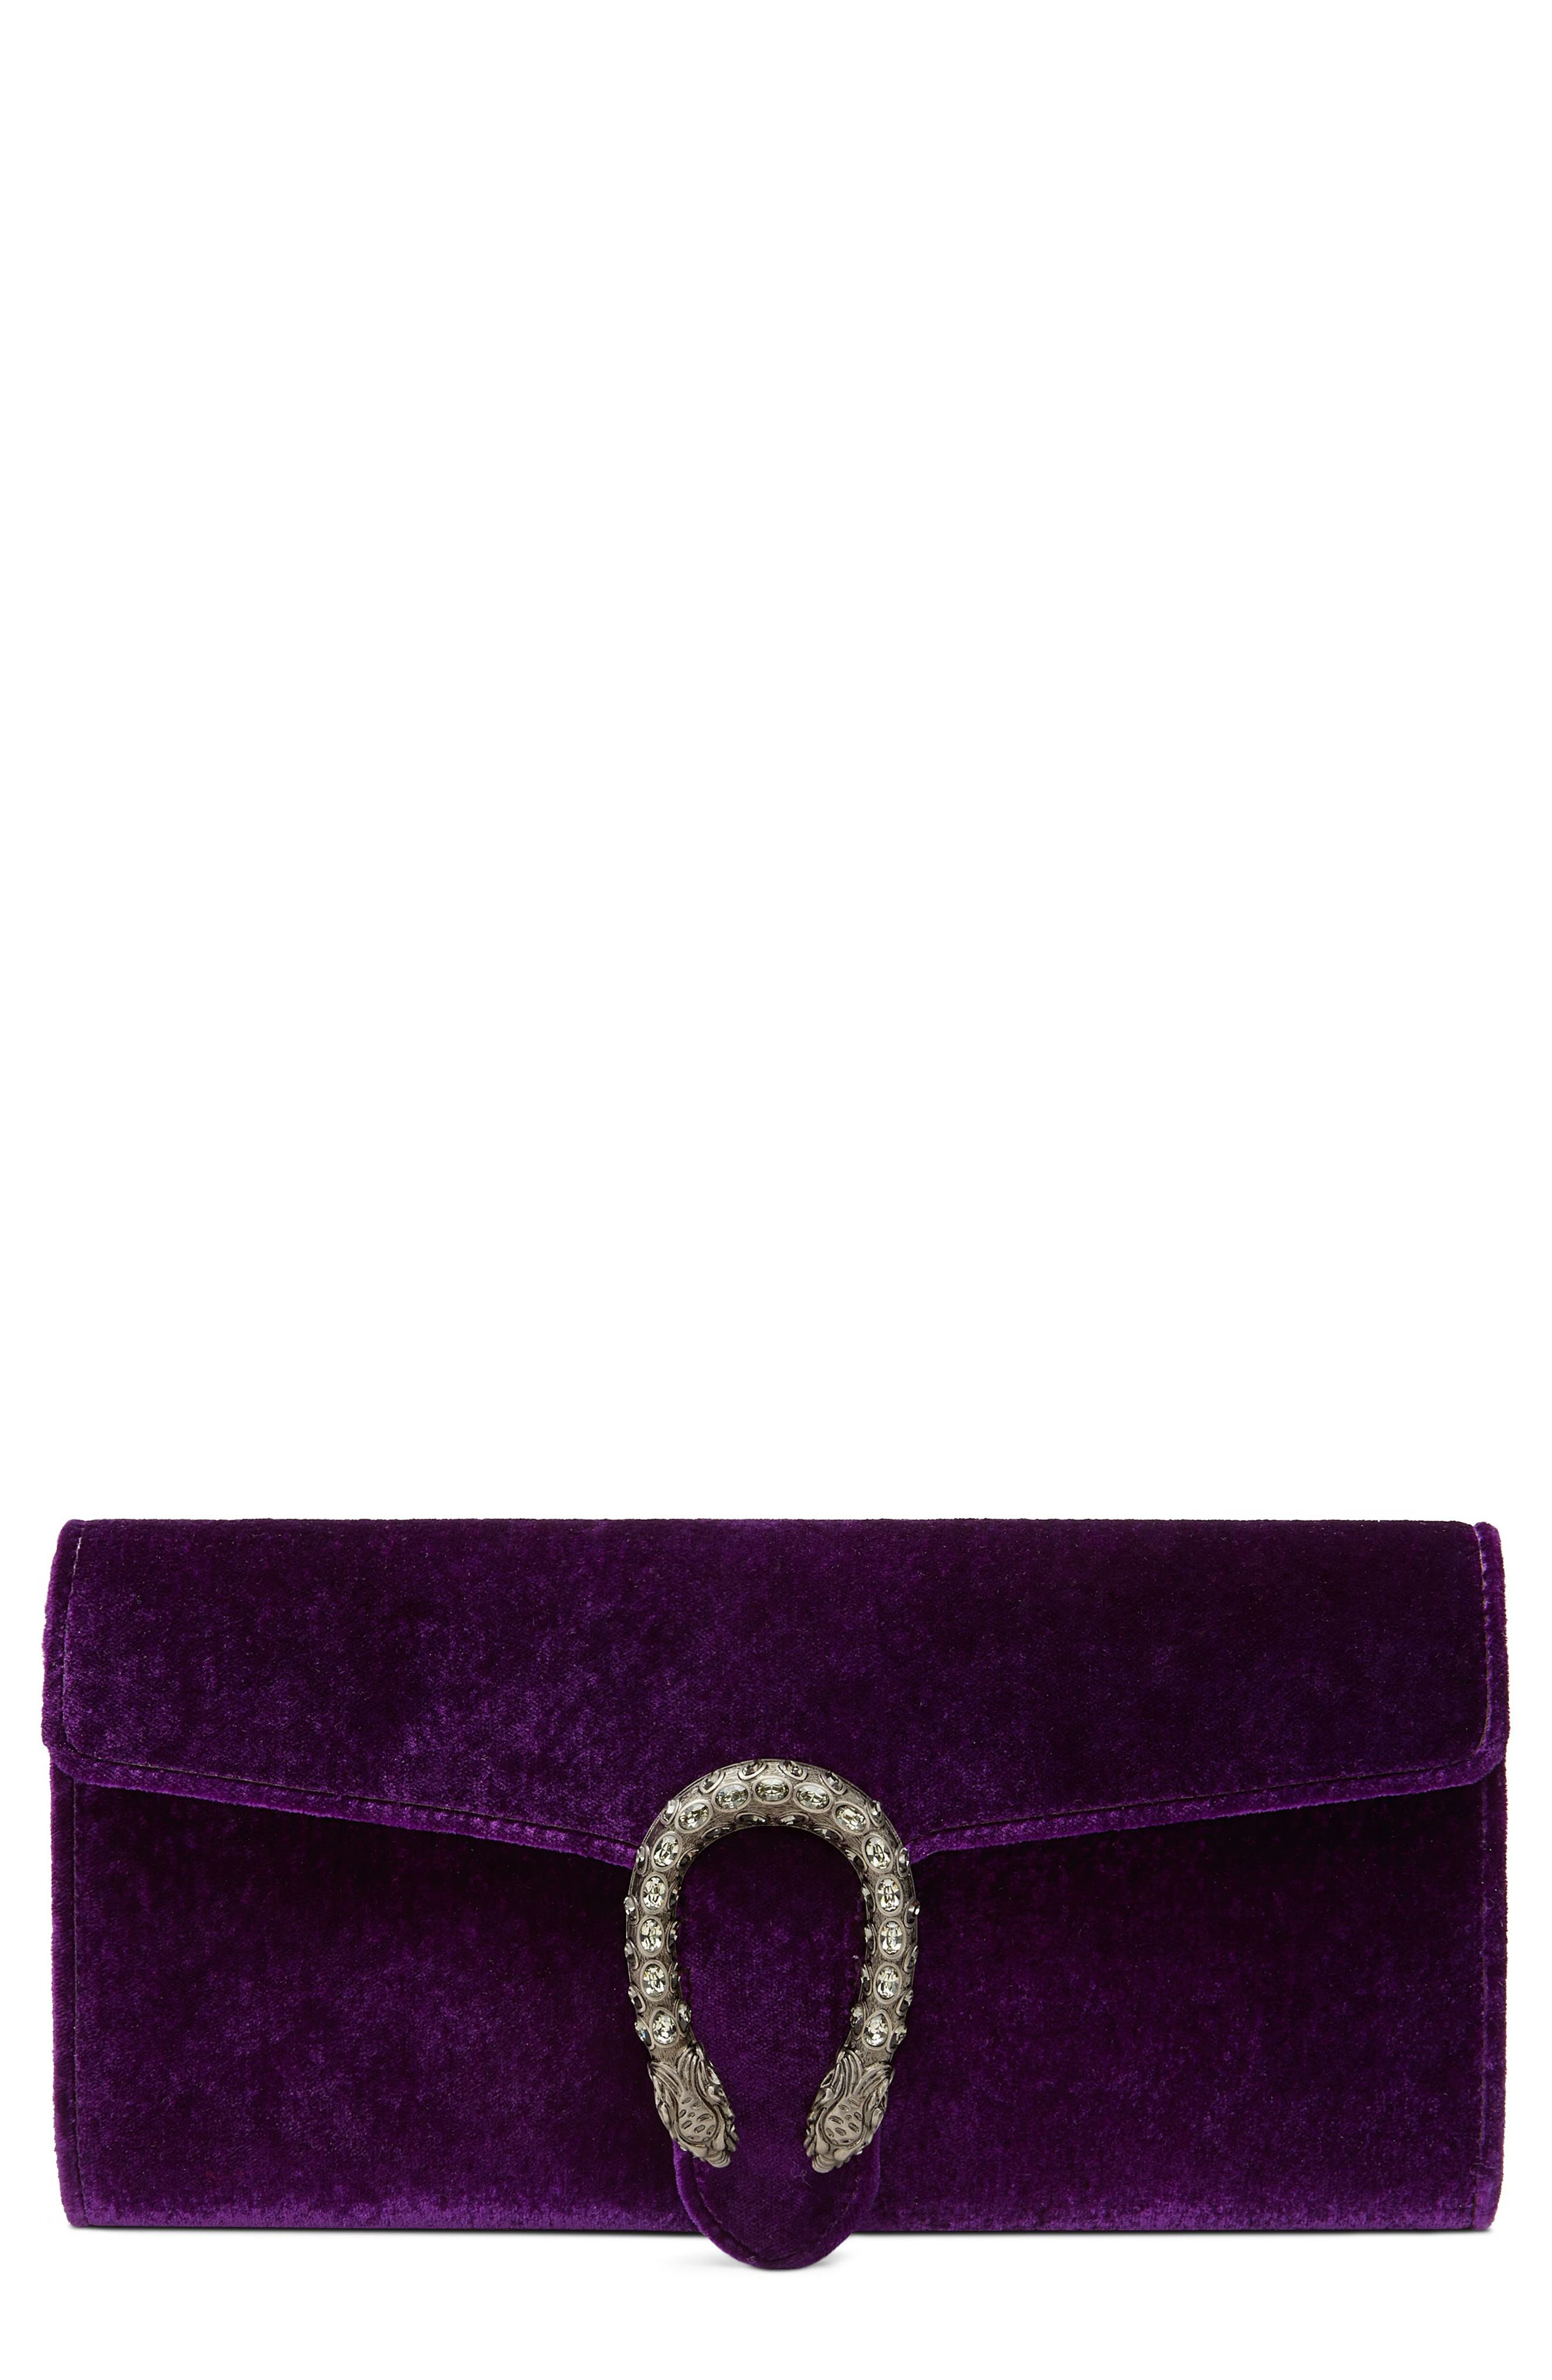 Main Image - Gucci Dionysus Velvet Clutch